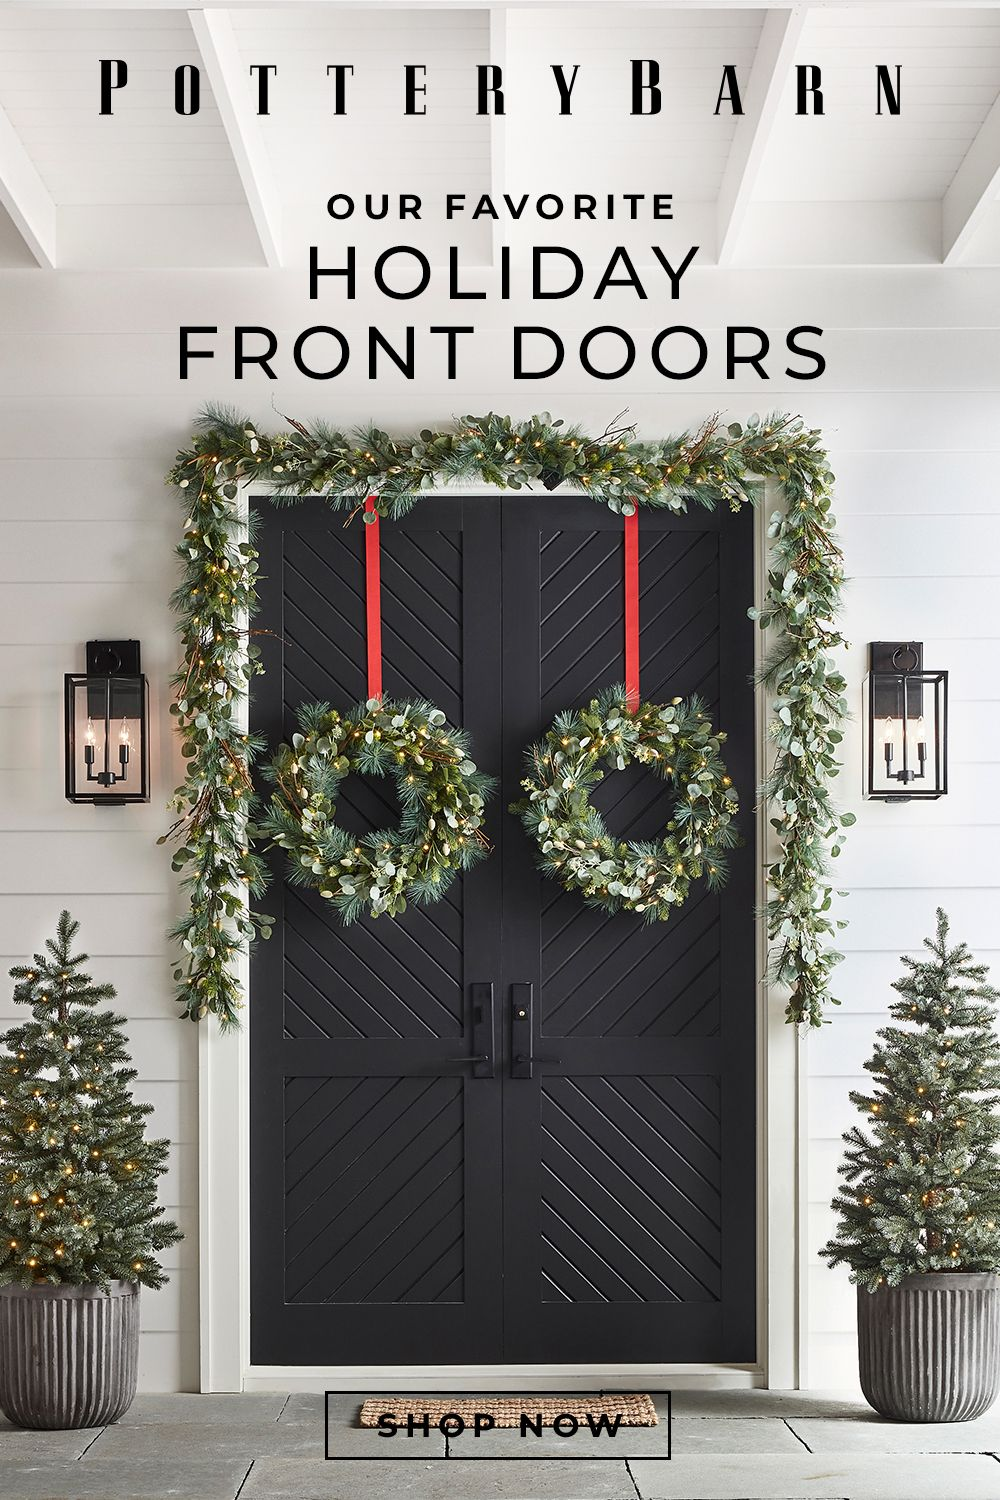 3 Ways to Decorate Your Front Door for the Holiday